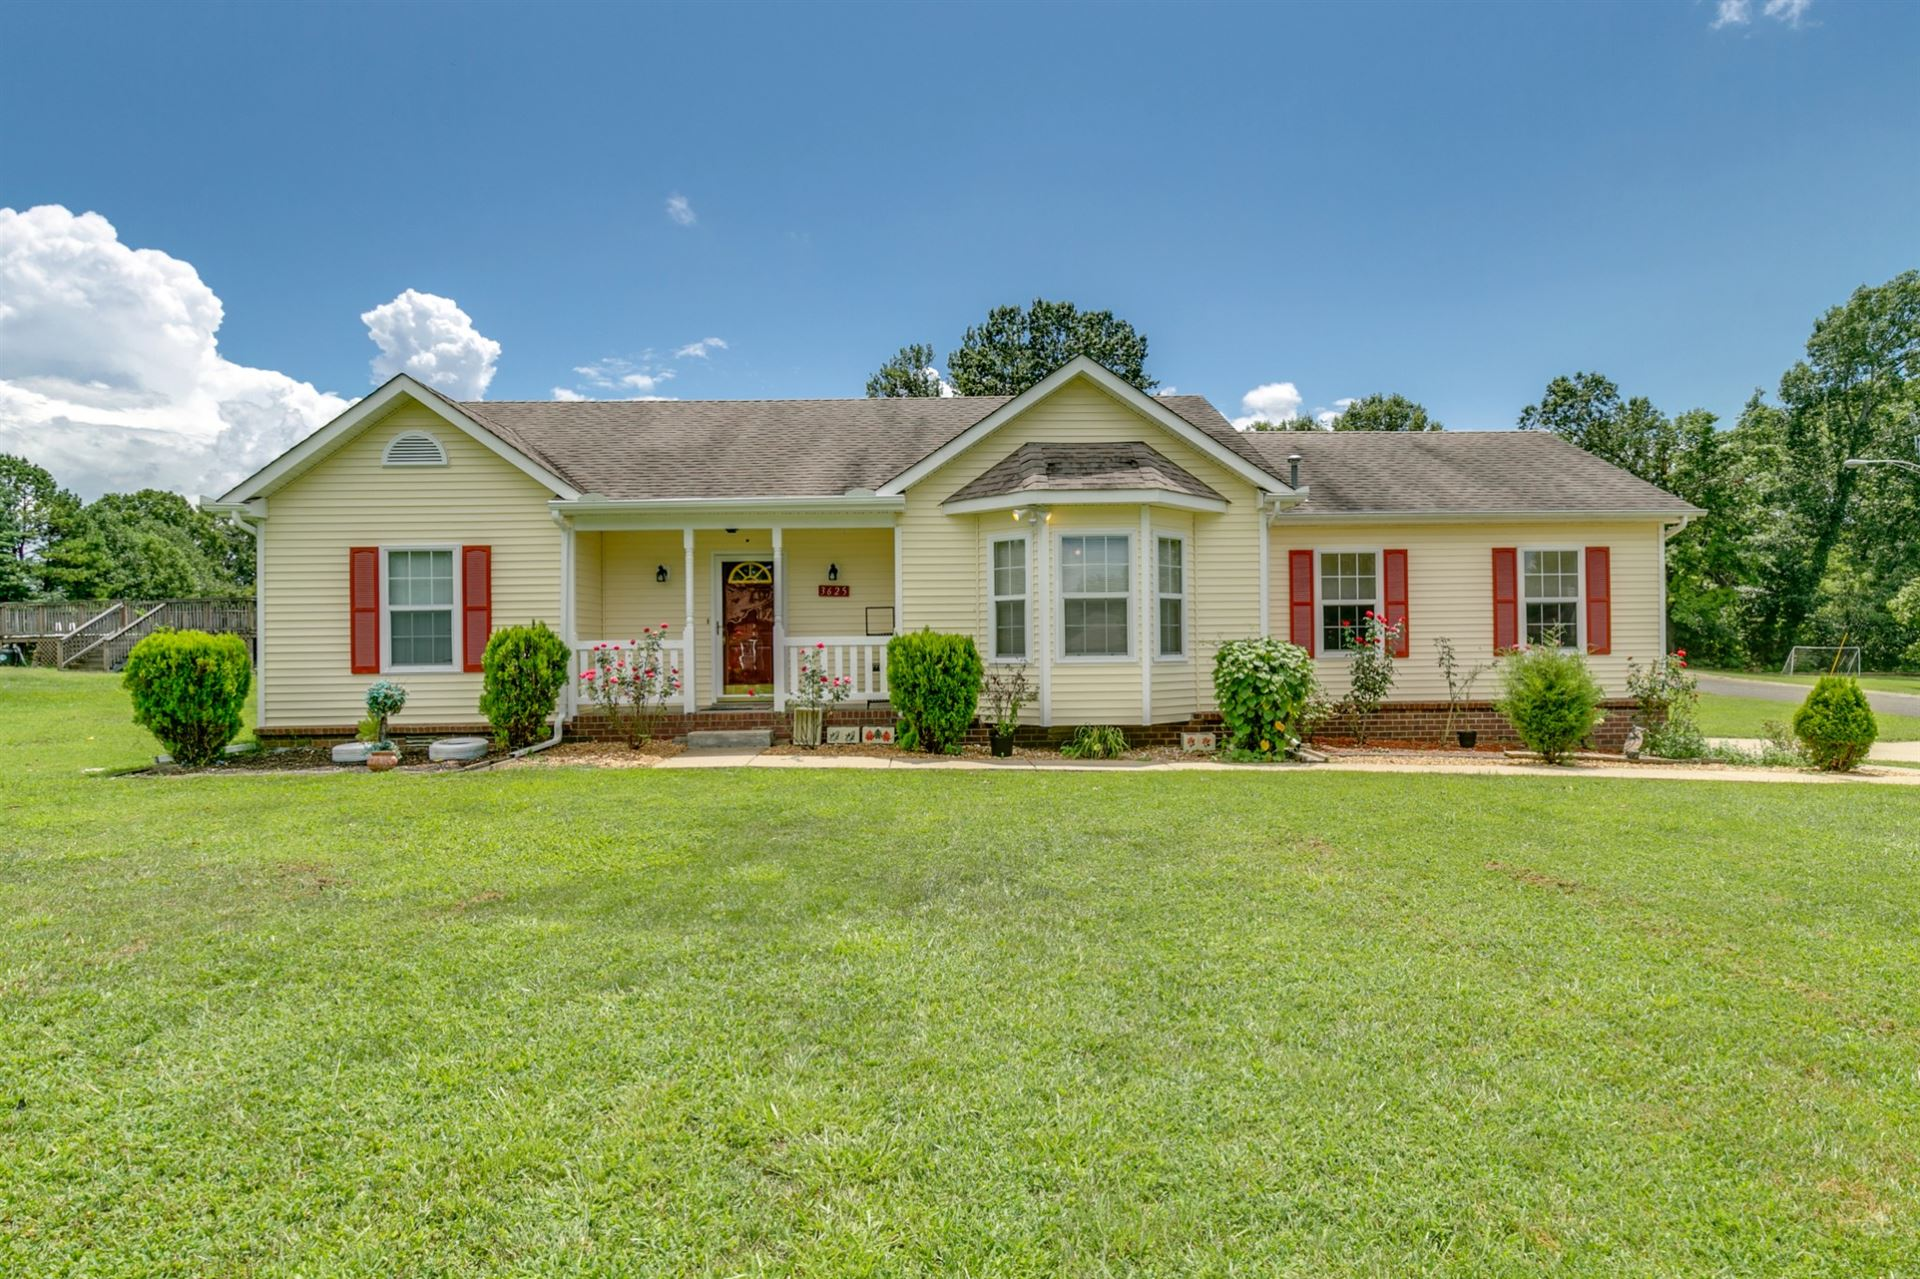 3625 Rutherford Dr, Spring Hill, TN 37174 - MLS#: 2174603